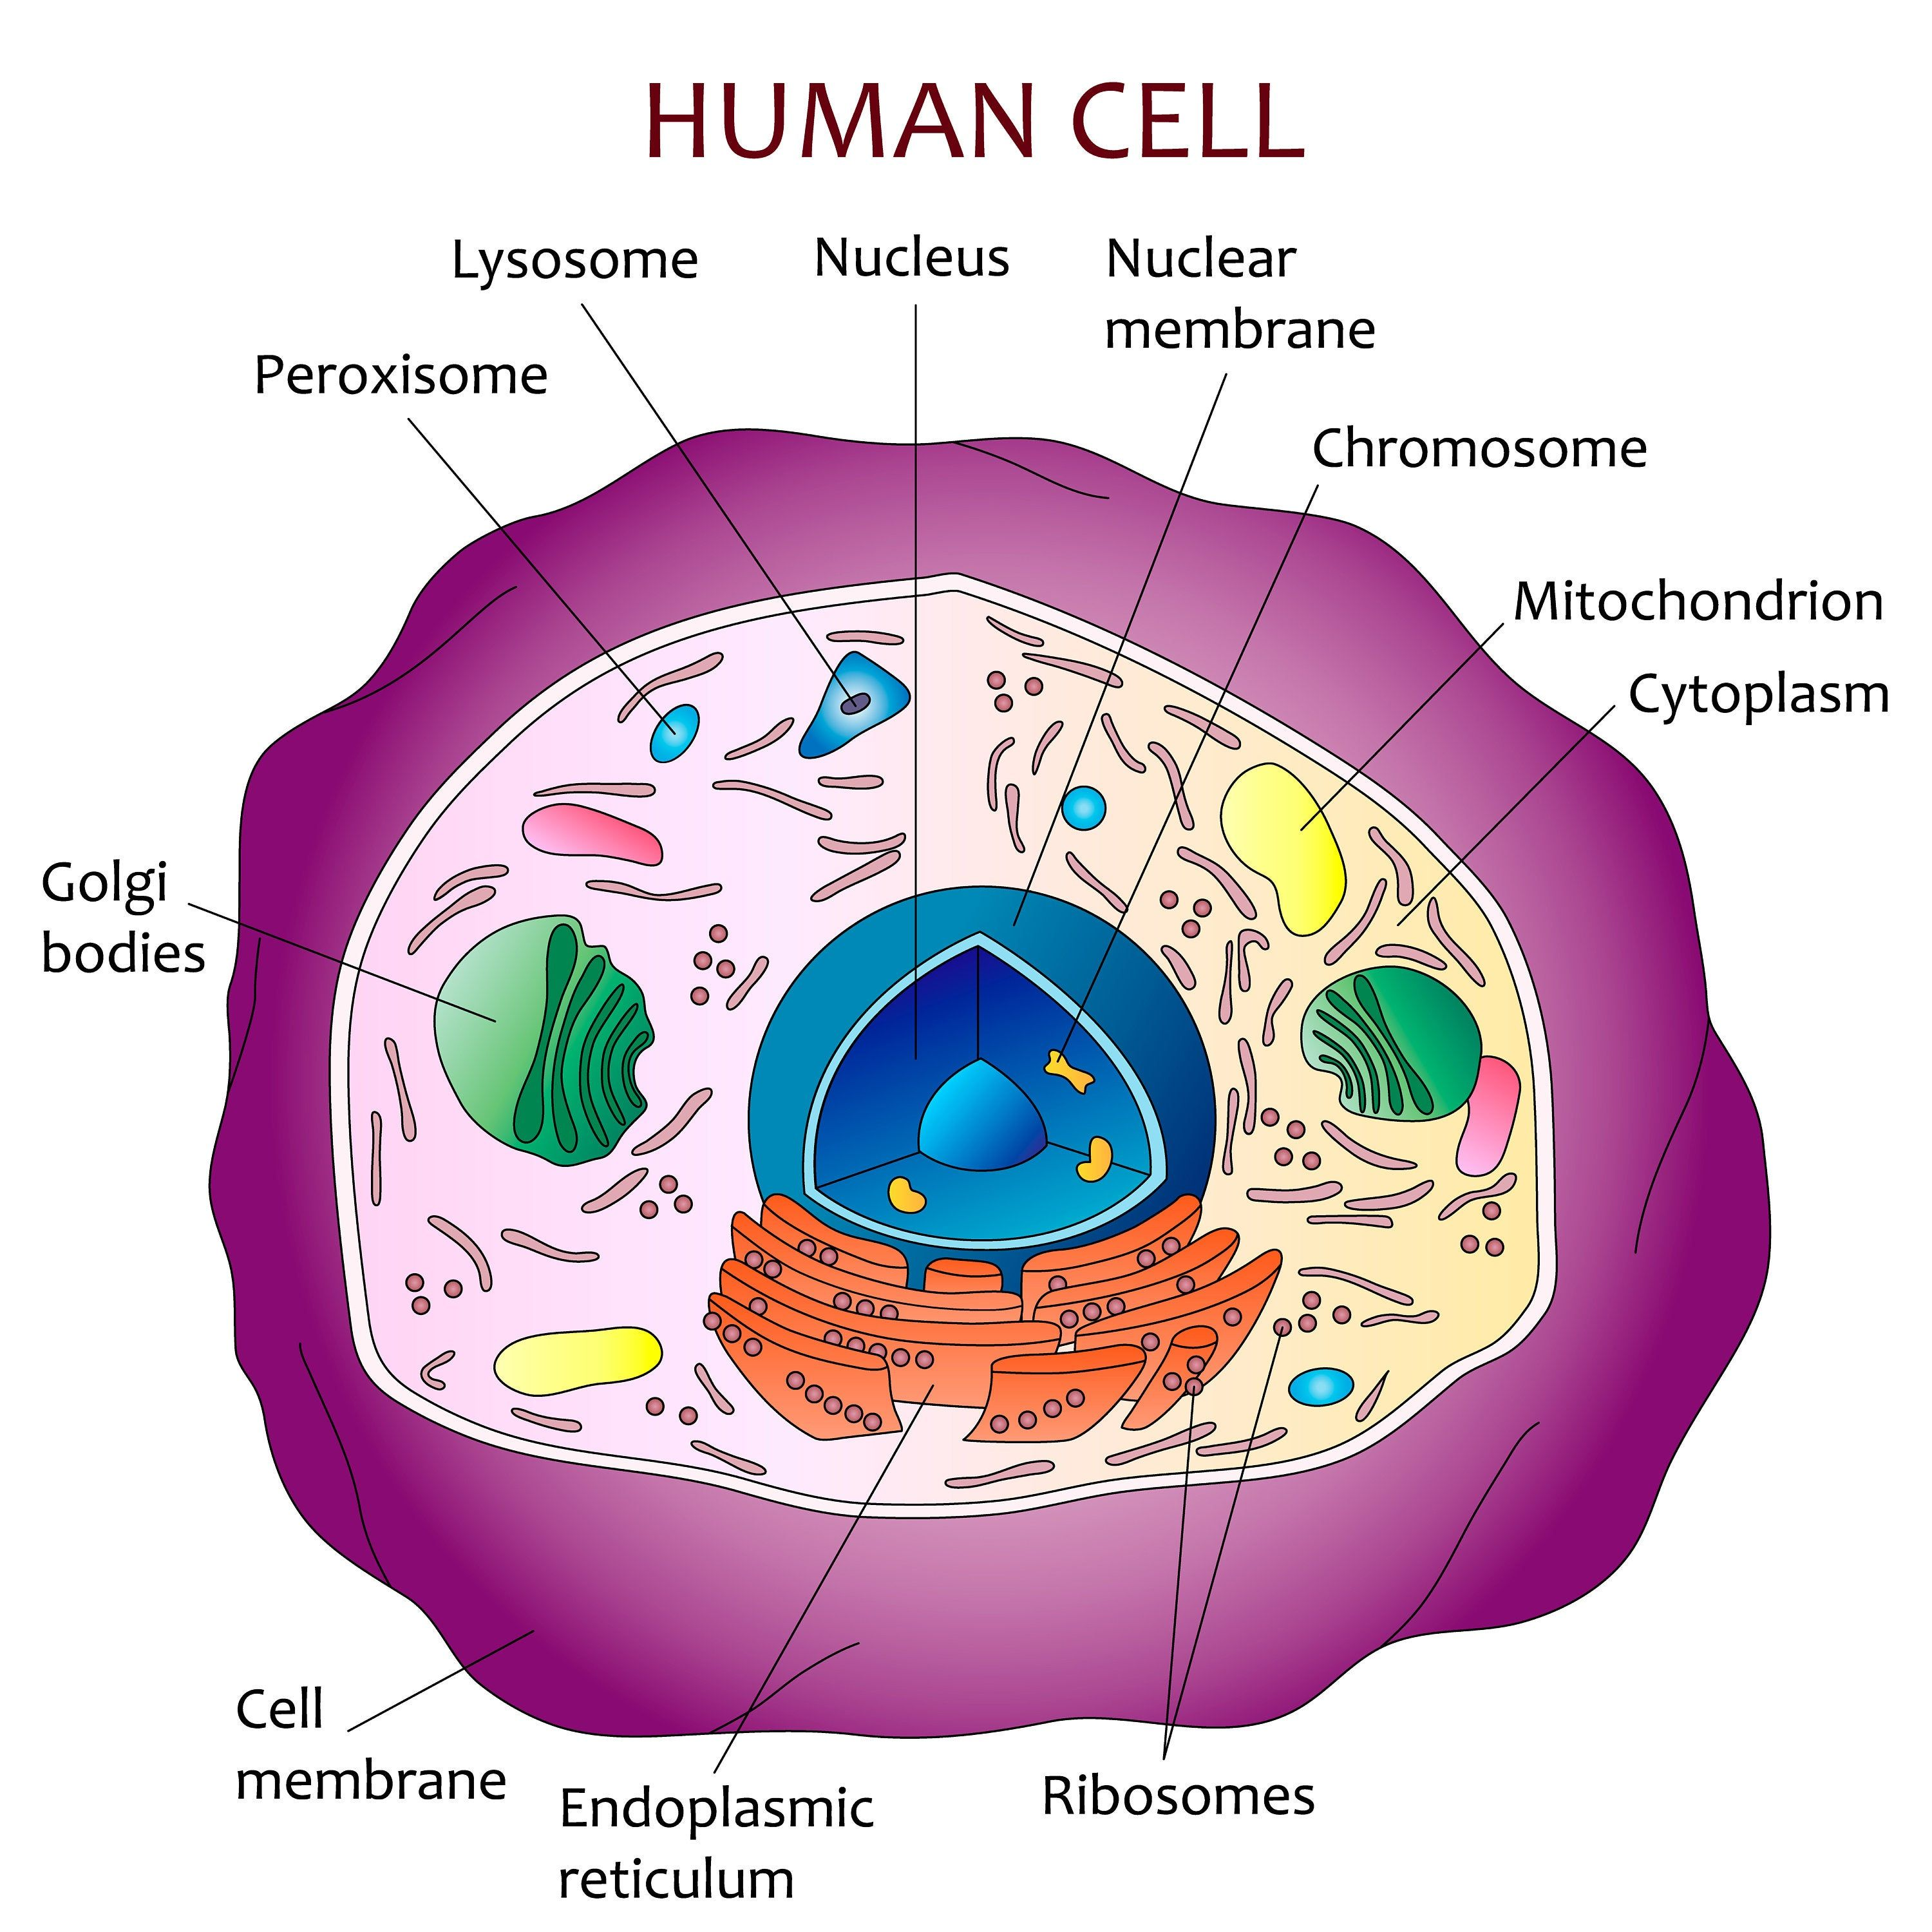 Human Cell Diagram Etsy In 2021 Human Cell Diagram Cell Diagram Human Cell Structure [ 3000 x 3000 Pixel ]